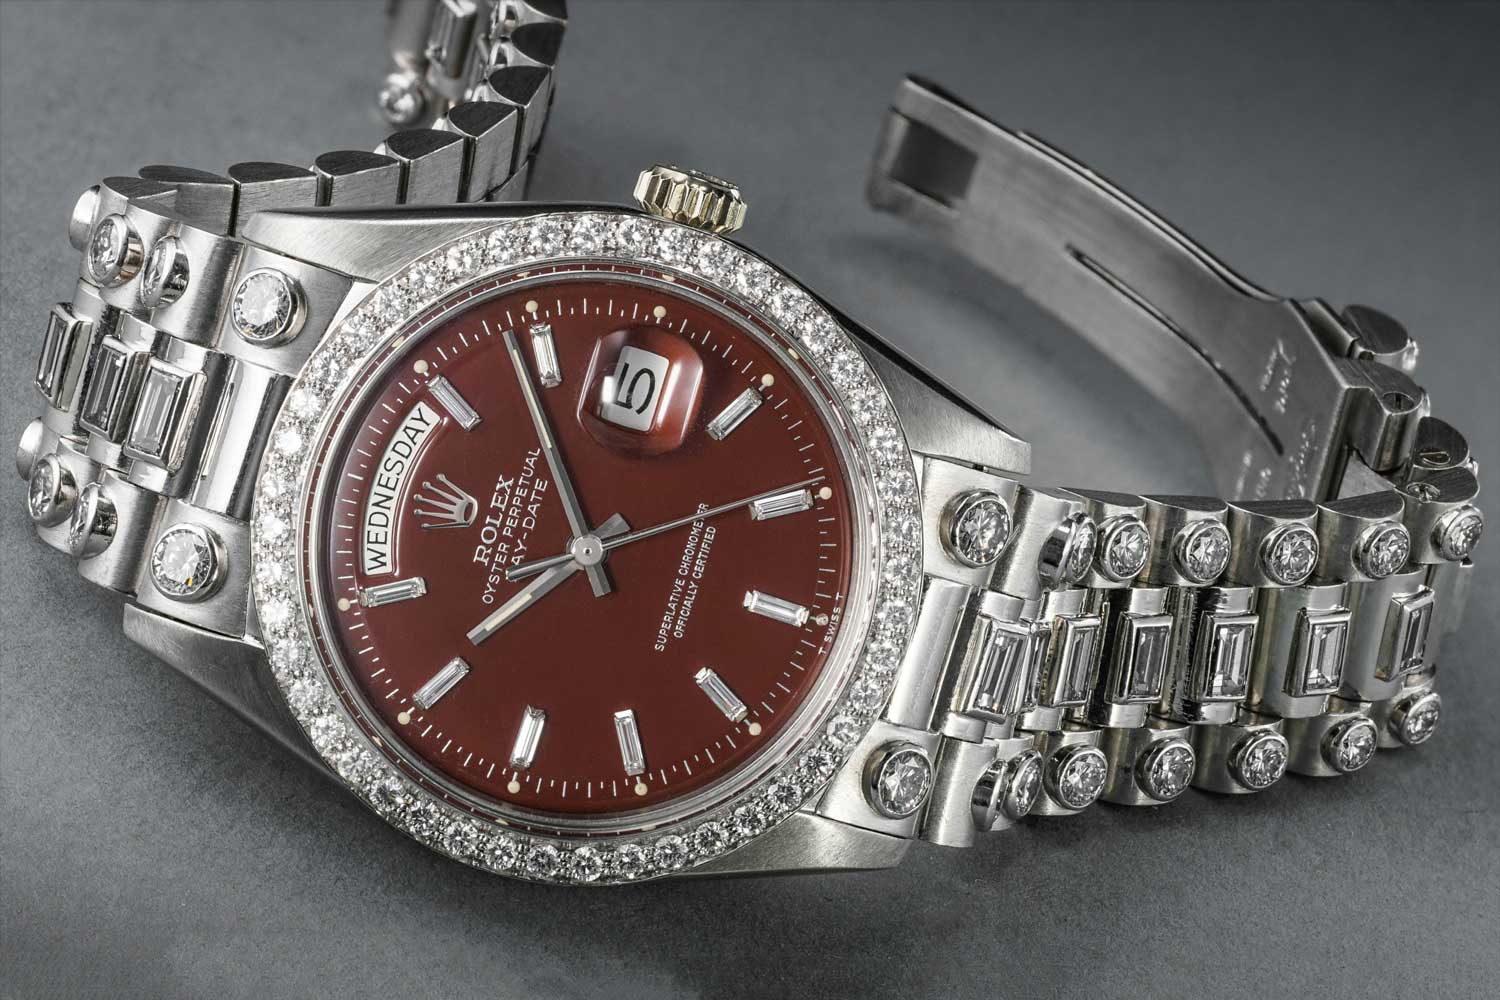 A platinum and diamond set Rolex ref. 1804 with a burgundy Stella dial from 1972. (Image: Phillips)